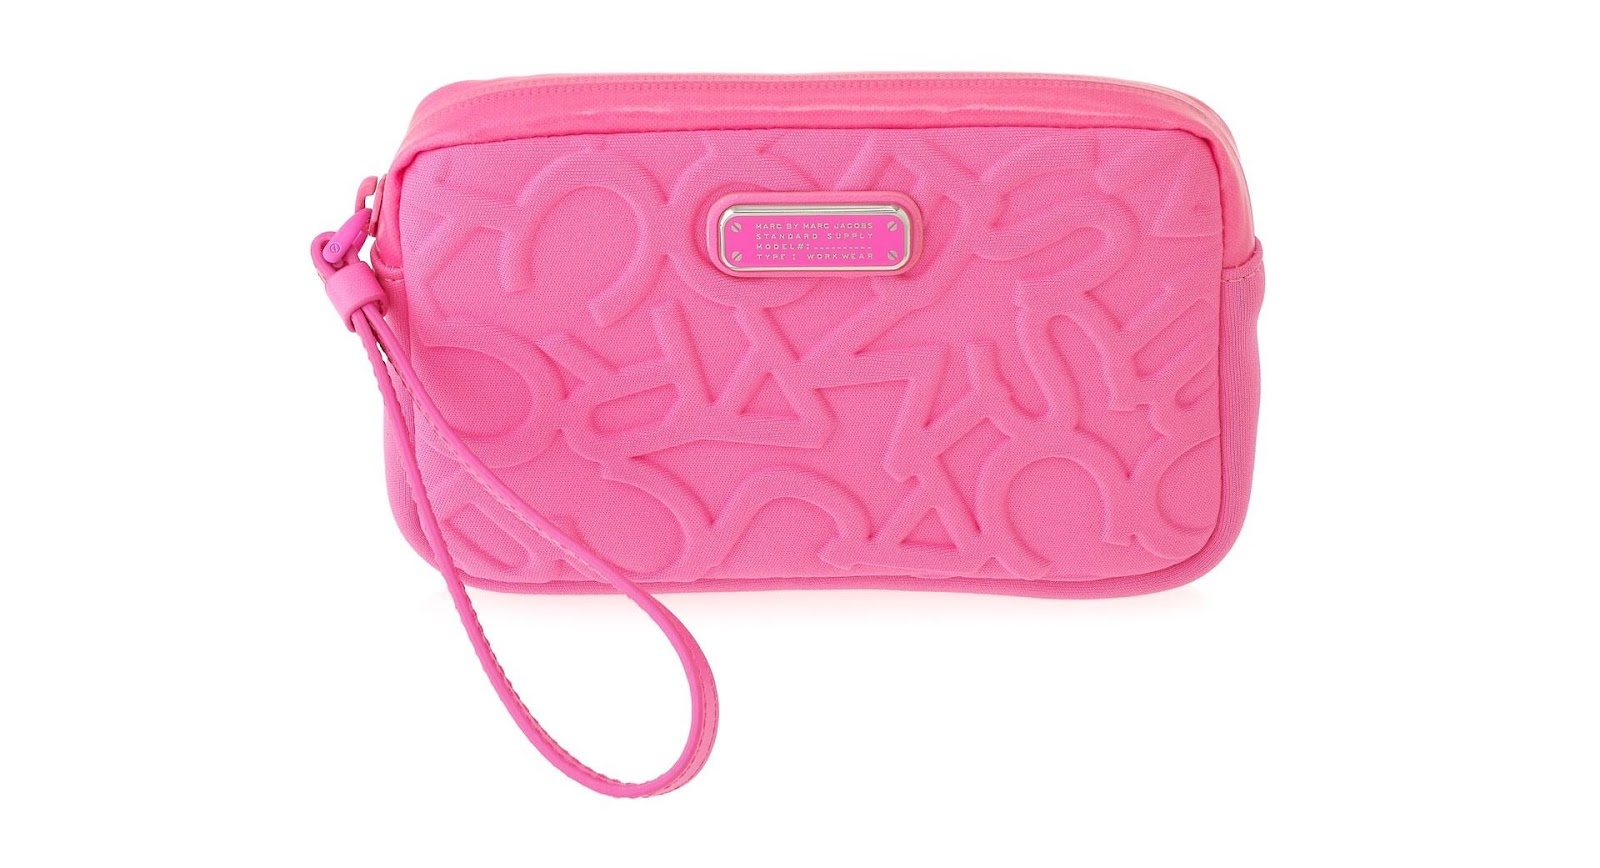 Marc by Marc Jacobs Knockout Pink neoprene universal smartphone case, marcjacobs.com